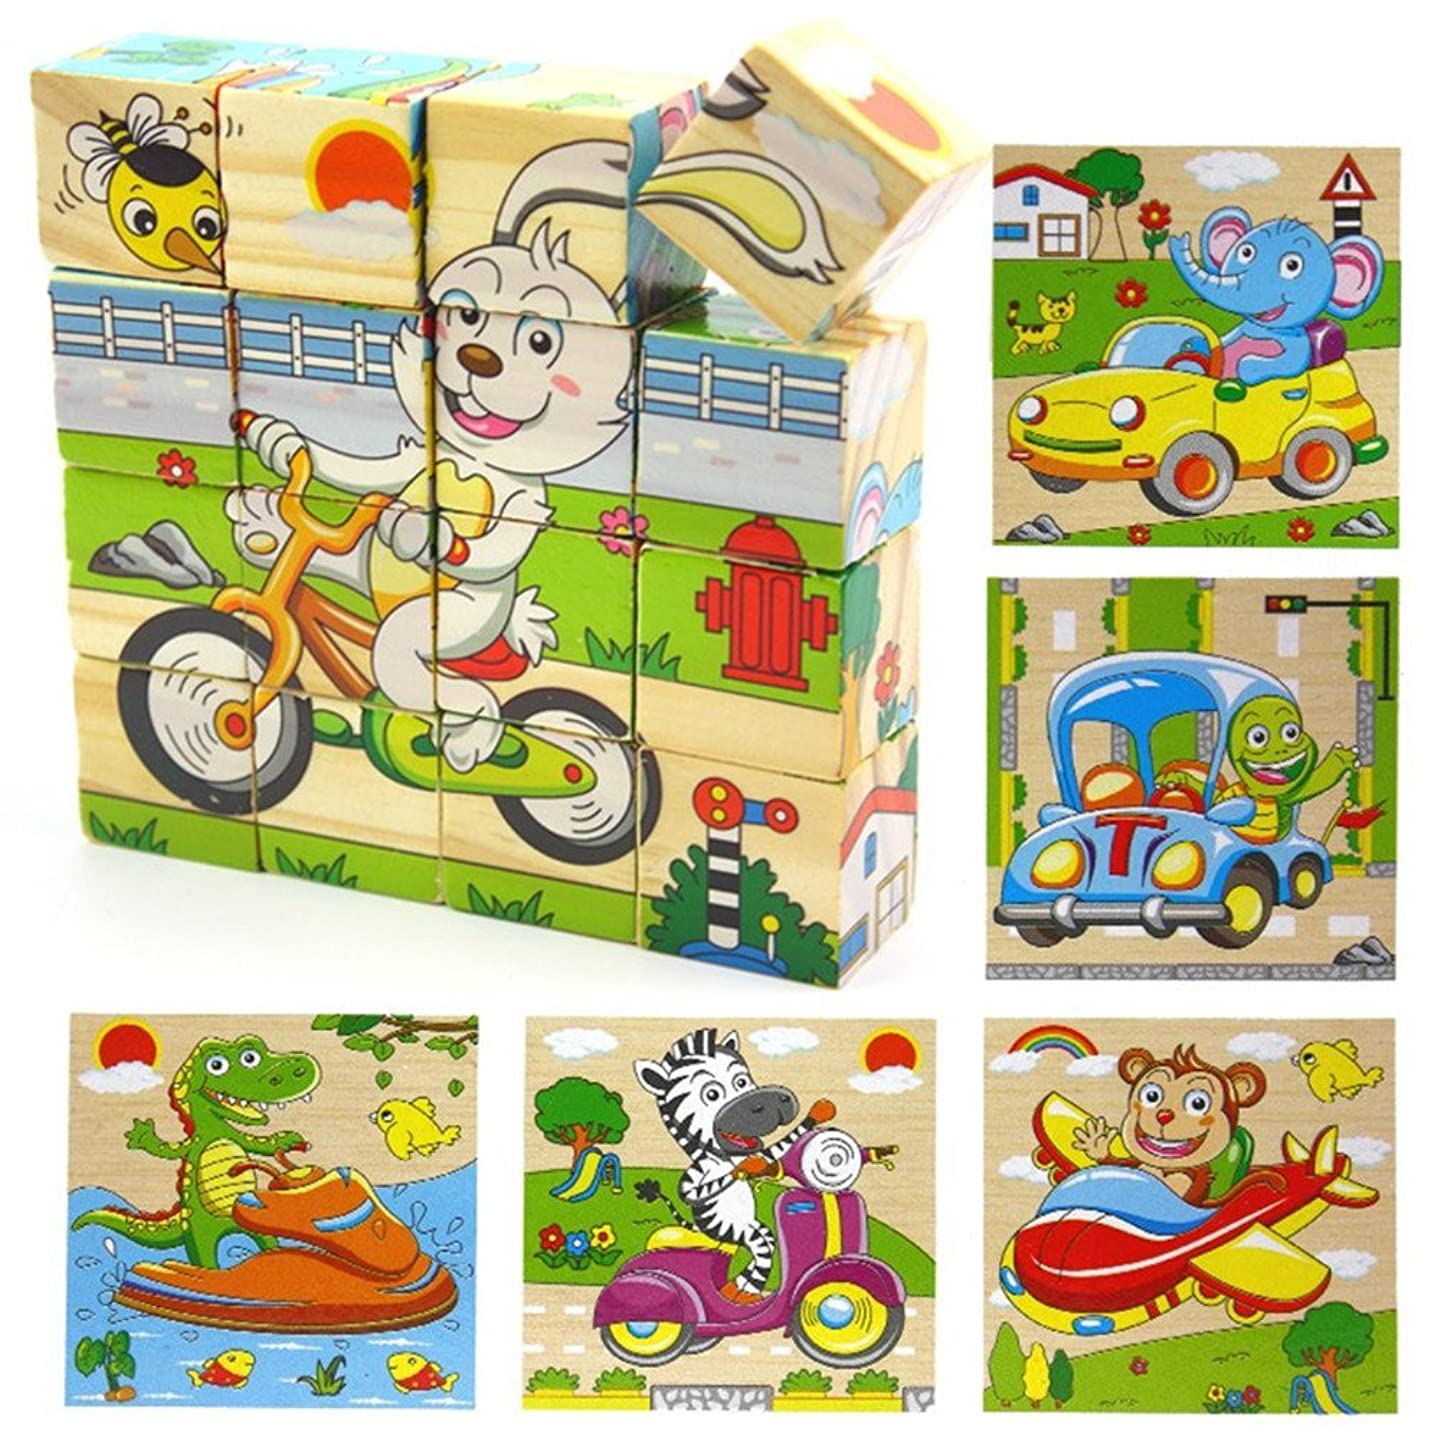 PROW Wooden 3D Cube Block Jigsaw Baby Toddler Kids Toys Safe Wood Building Blocks Puzzles -16 Pcs (Animal Traffic Series)